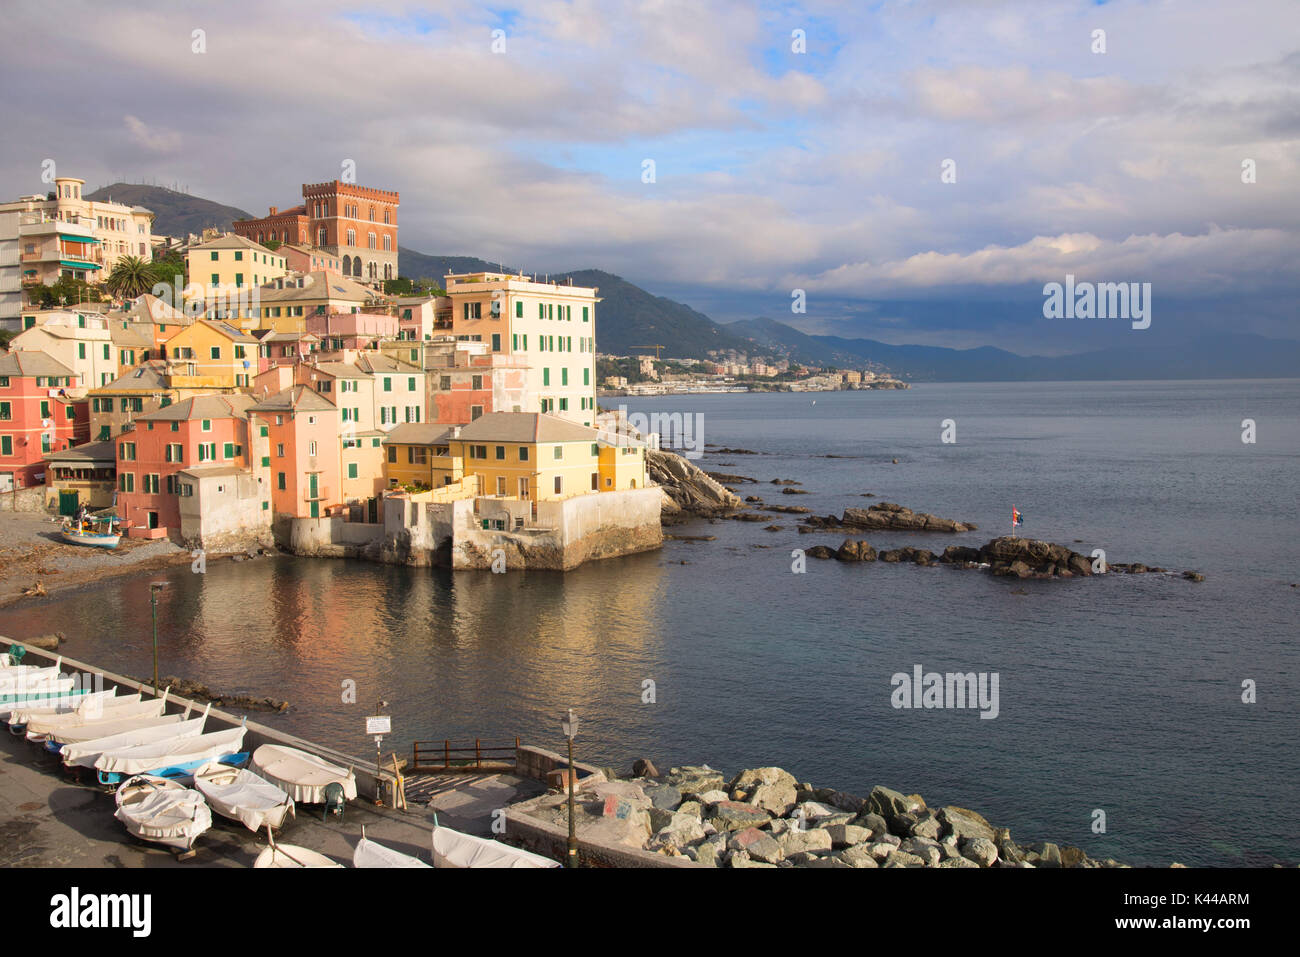 View of Boccadasse, Genoa, in a beautiful day. This part of the city is very beautiful, old and trip destination for foreigners. - Stock Image